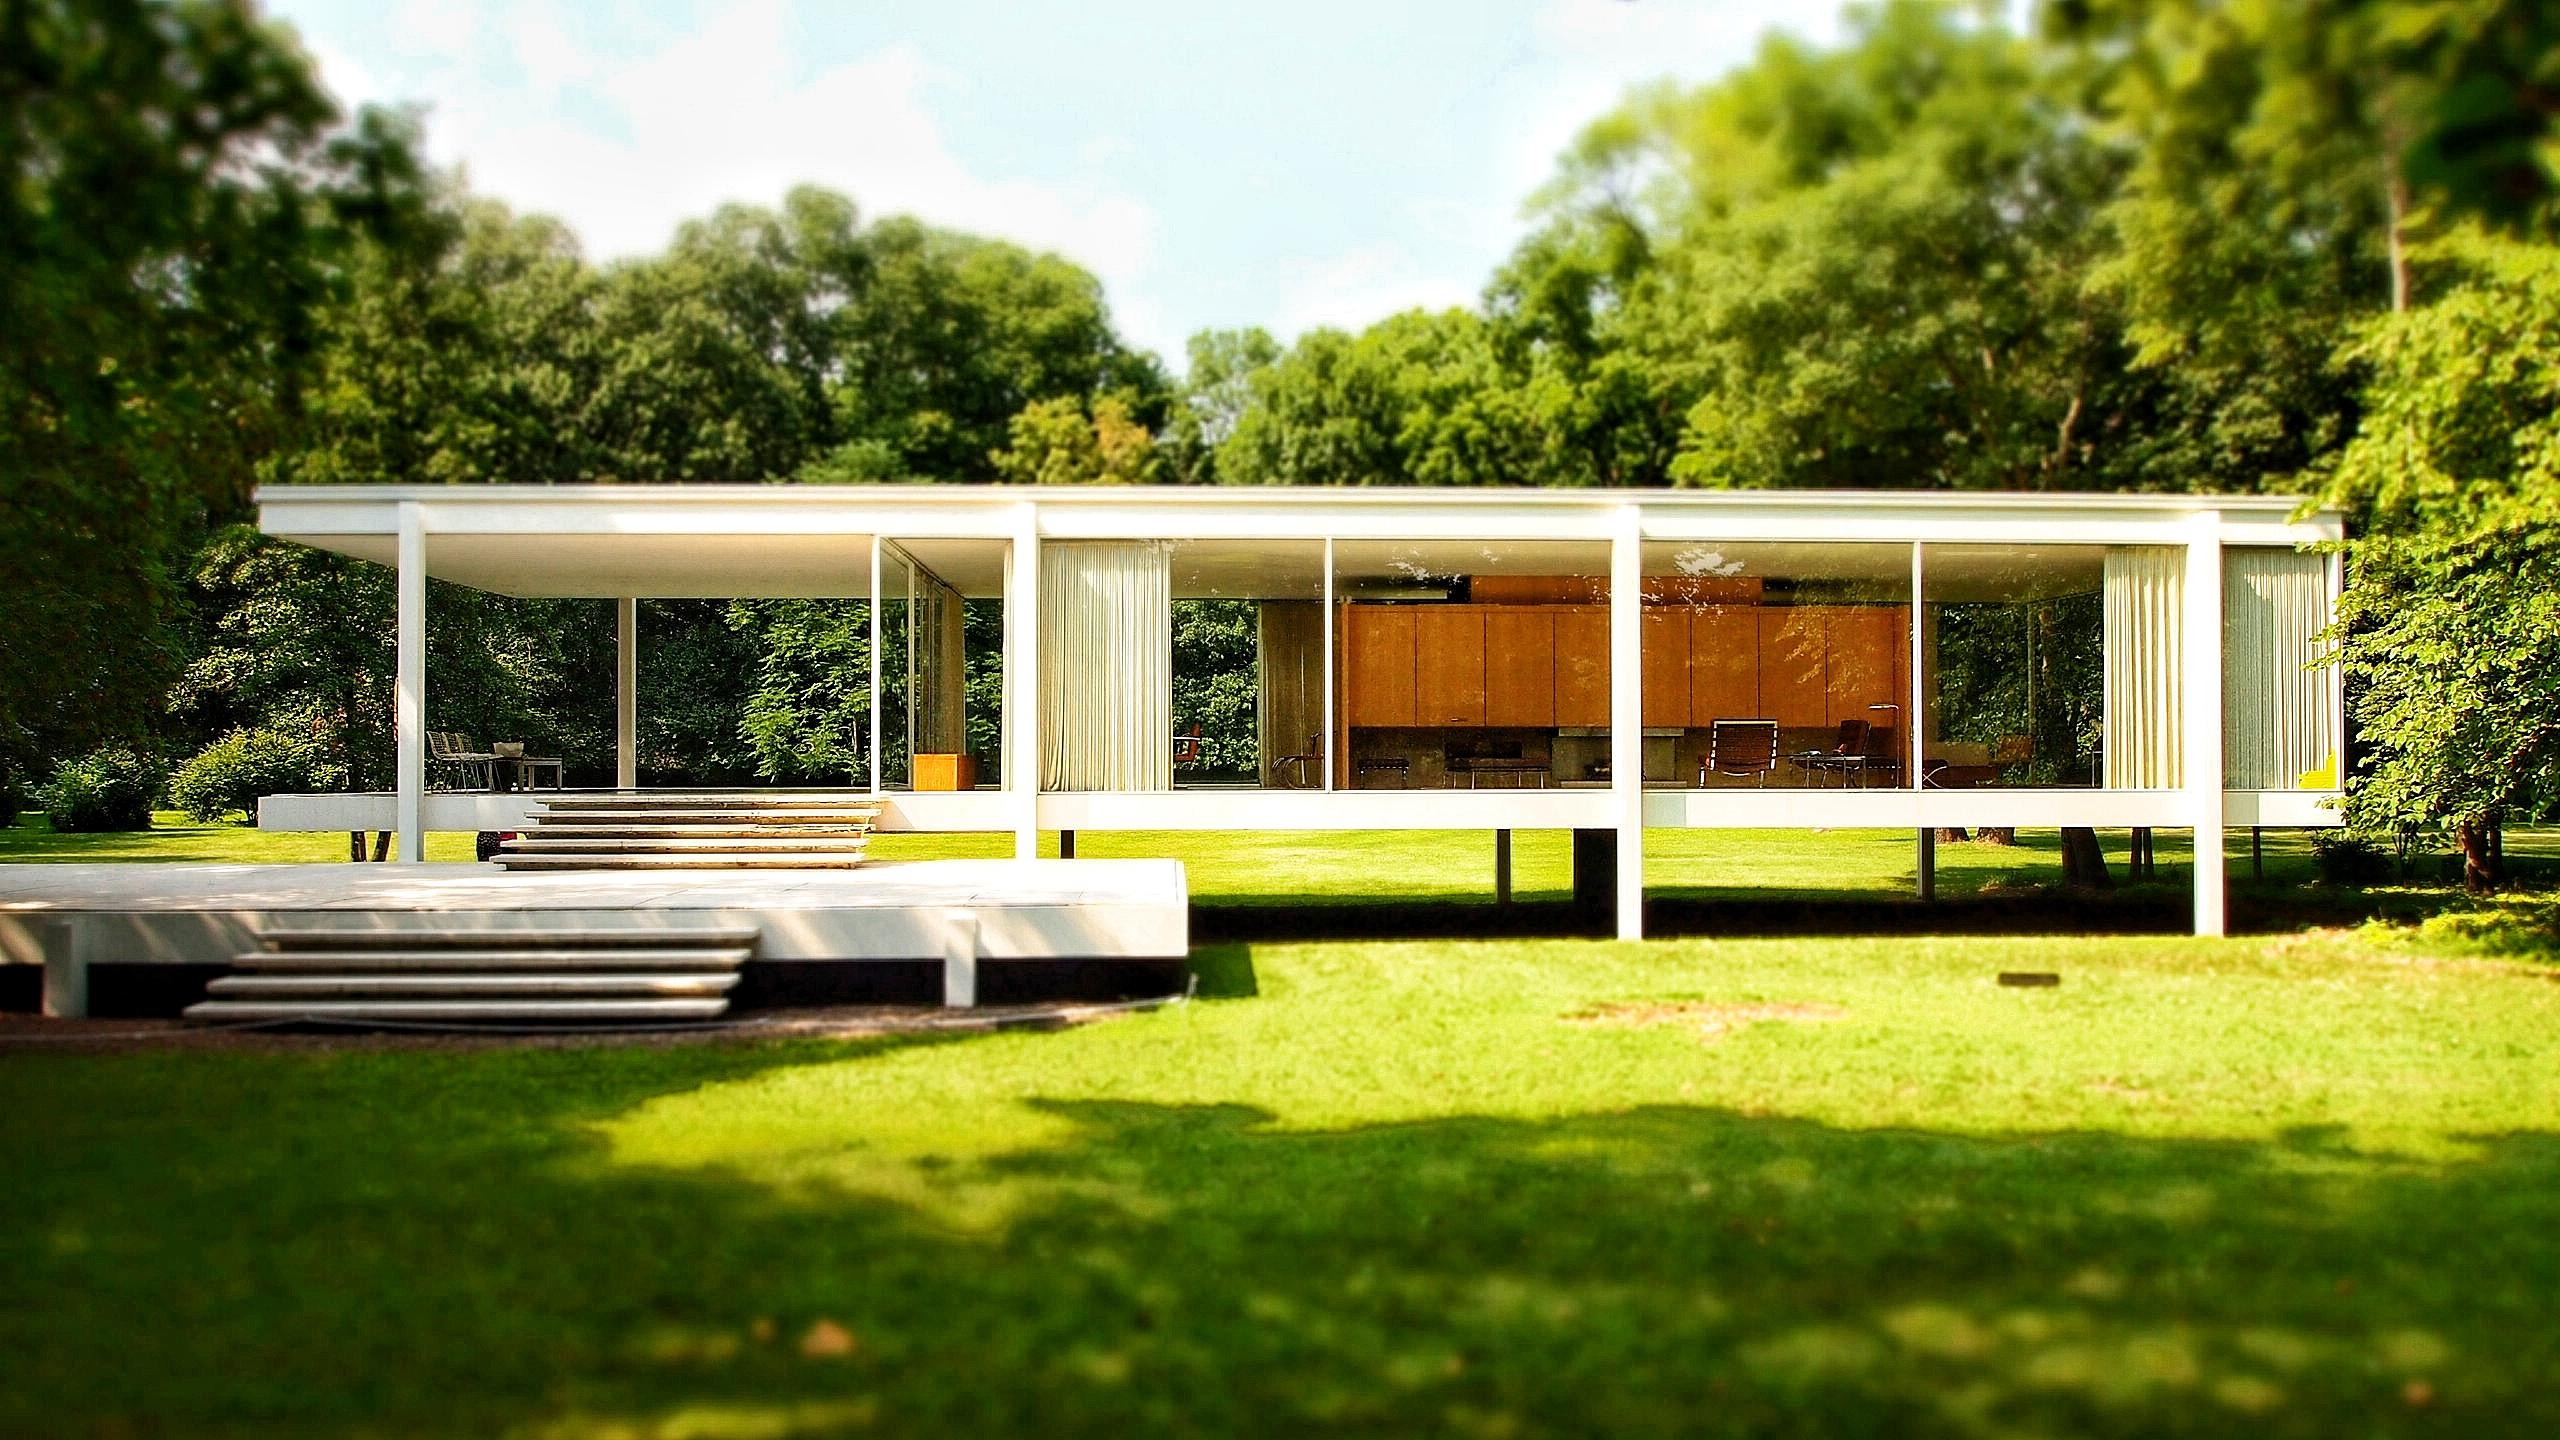 Ludwig Mies Van Der Rohe The Farnsworth House By Ludwig Mies Van Der Rohe Plano Illinois